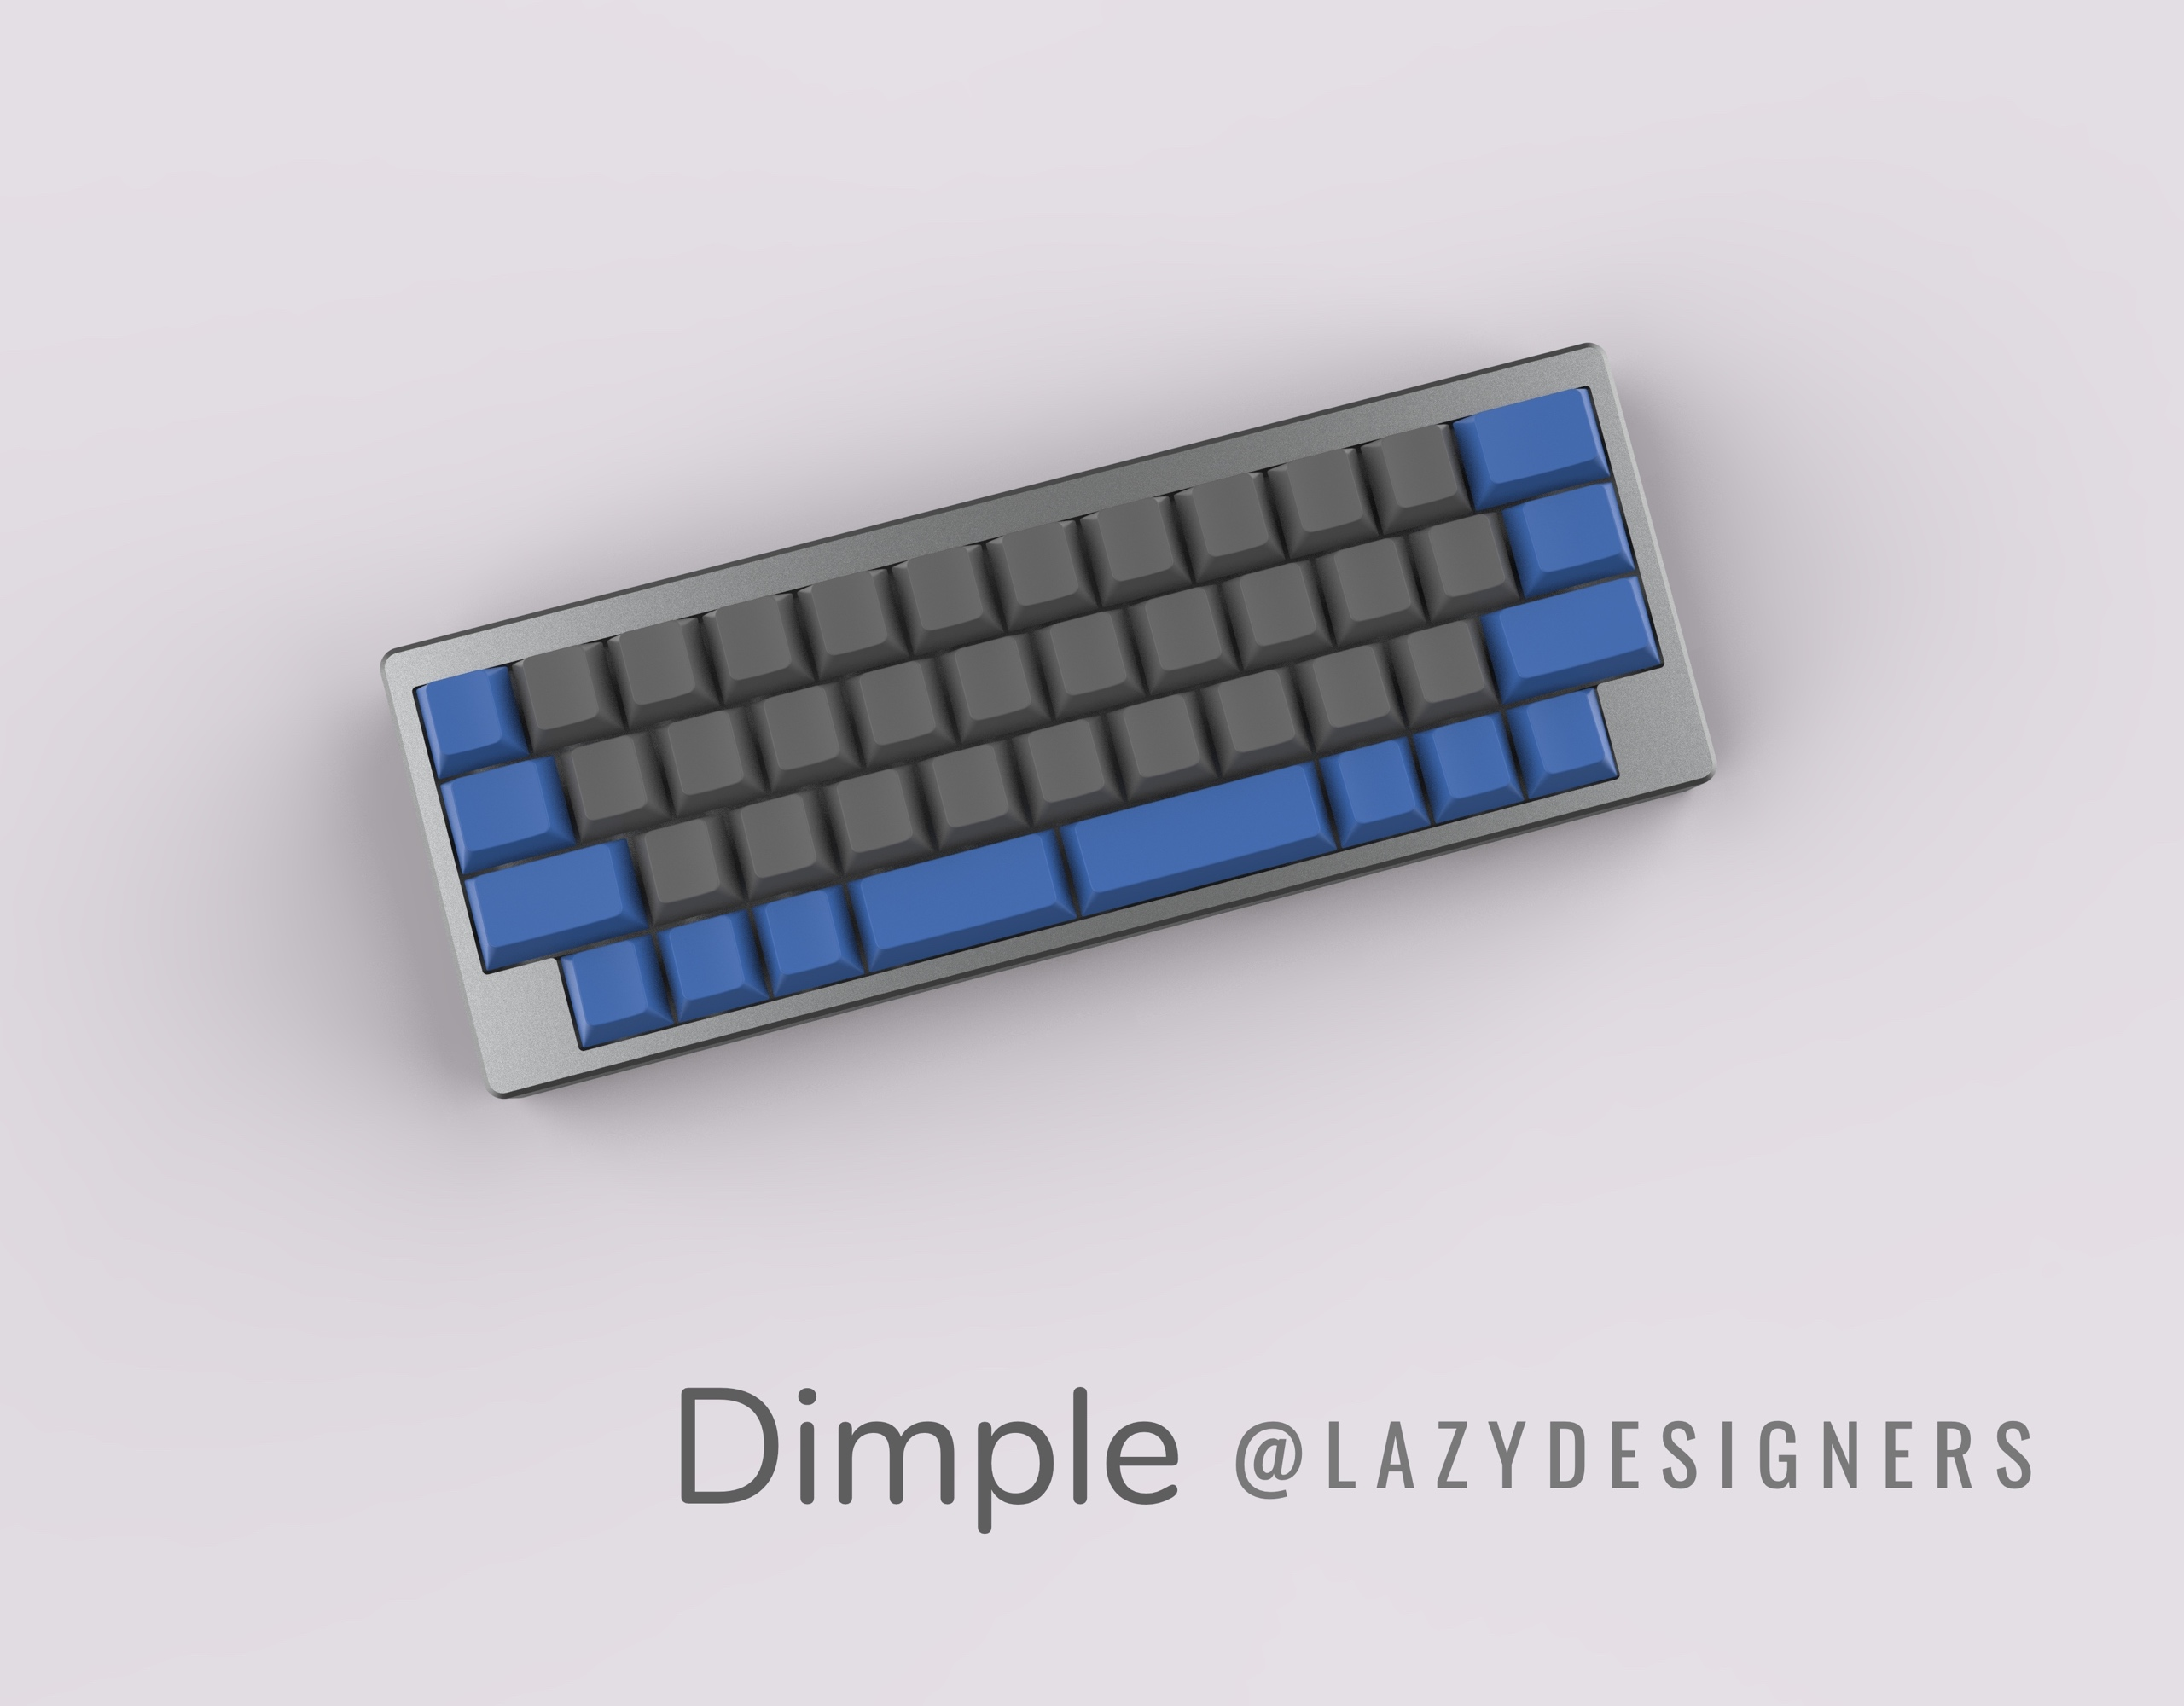 IC] Dimple - a 40% layout keyboard (Final Update:kit assembling video)